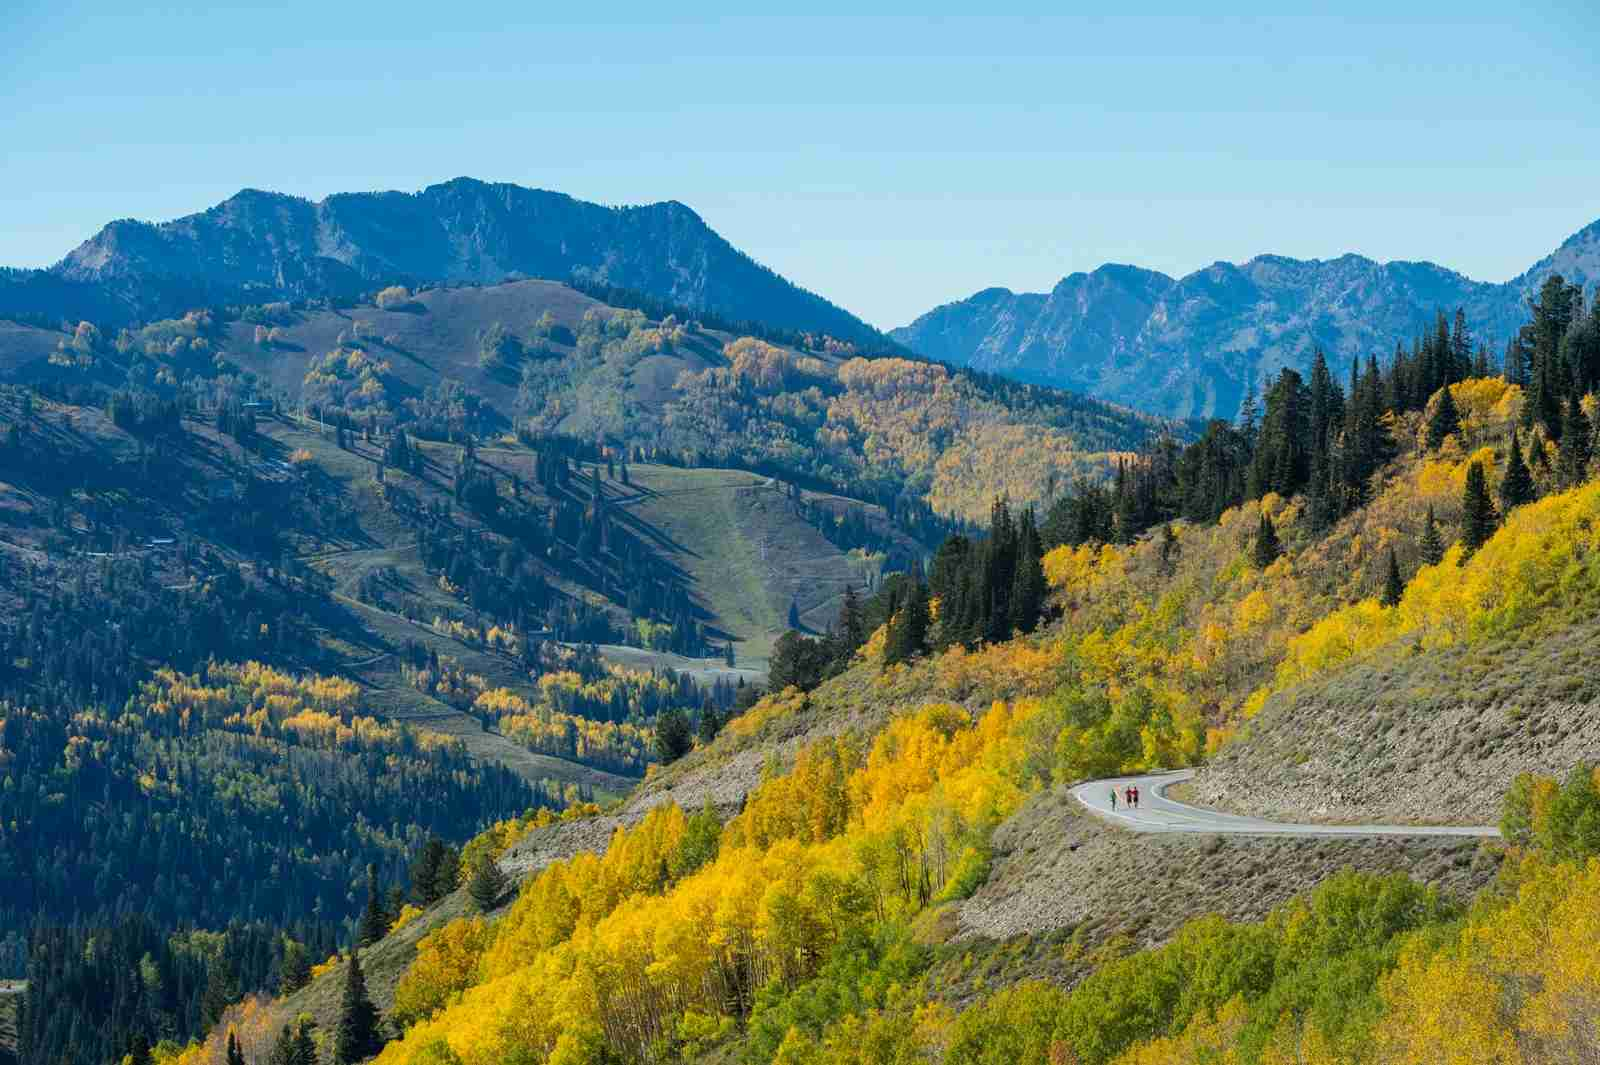 The Wasatch Mountains near Park City, Utah. (Photo by Scott Markewitz/Getty Images)